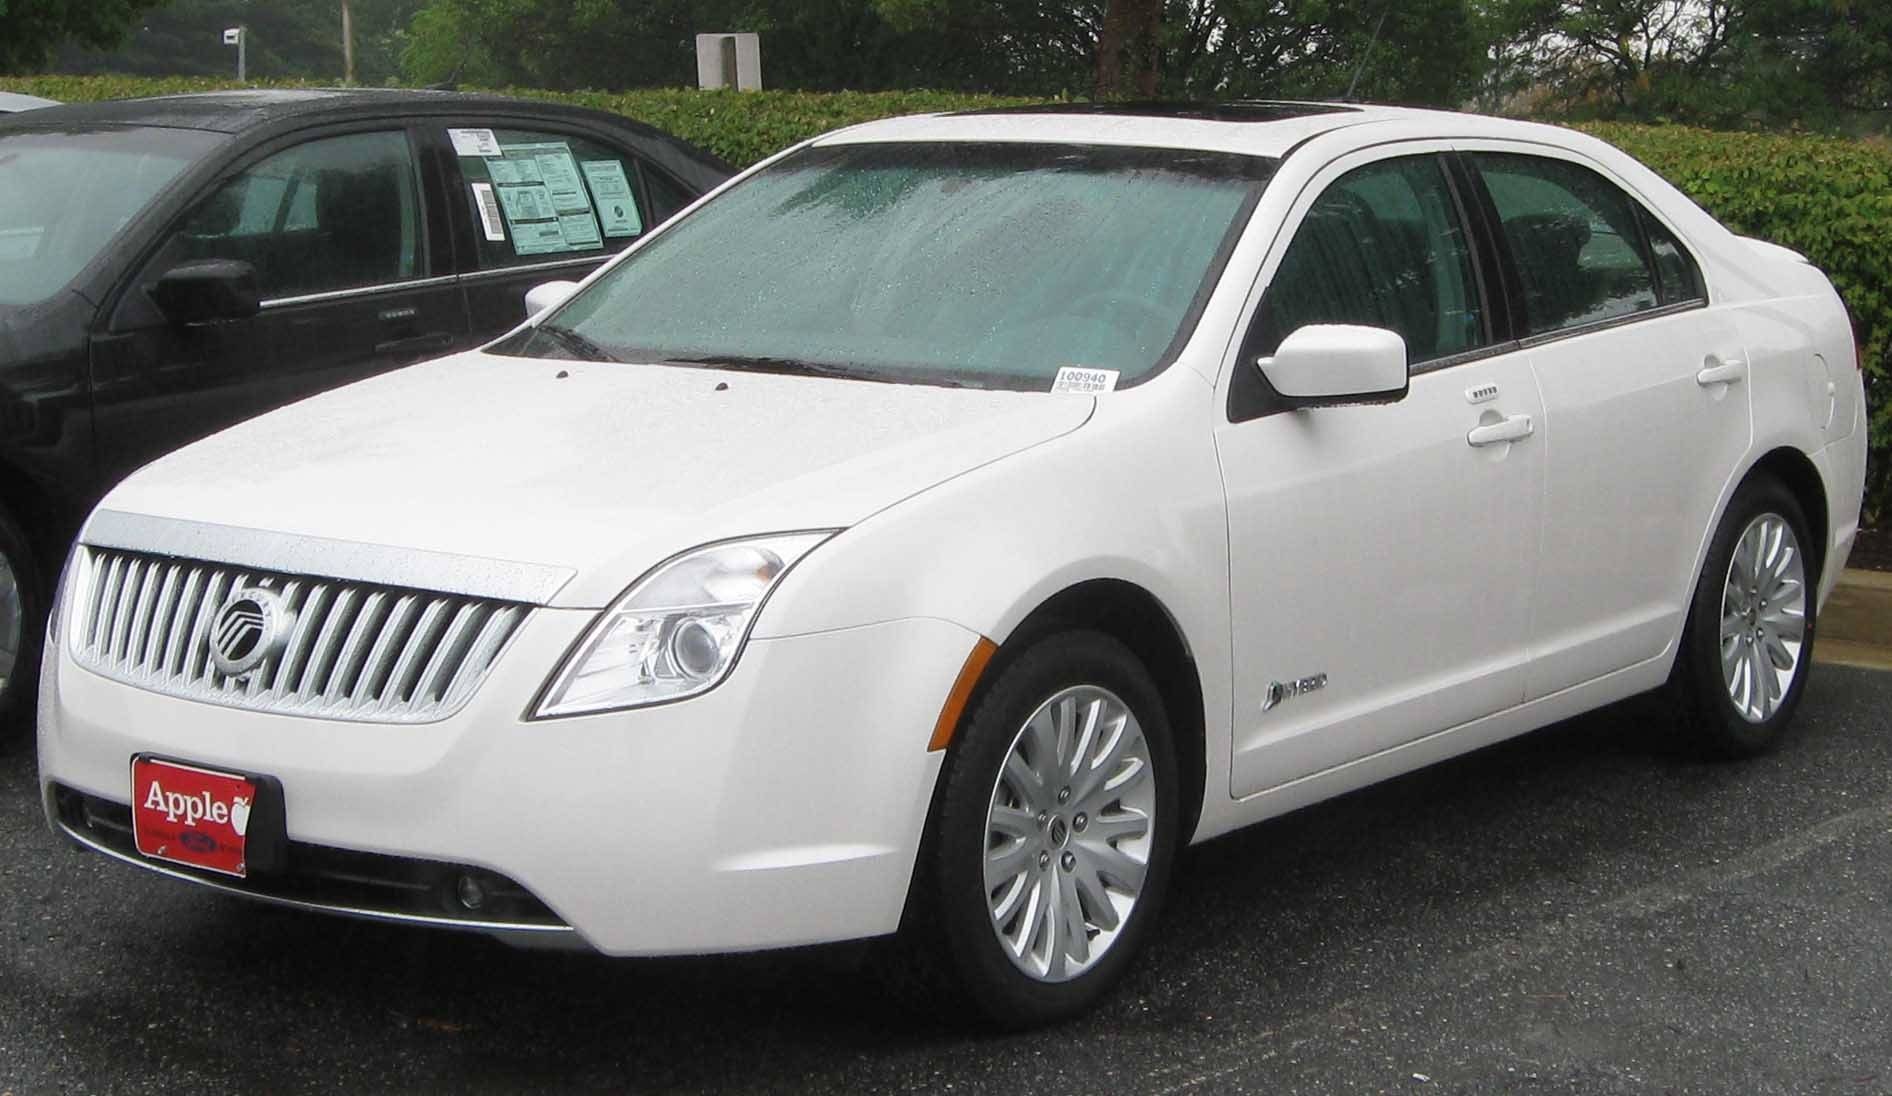 All Wheel Drive Cars List >> 2009 Mercury Milan Premier - Sedan 3.0L V6 AWD auto